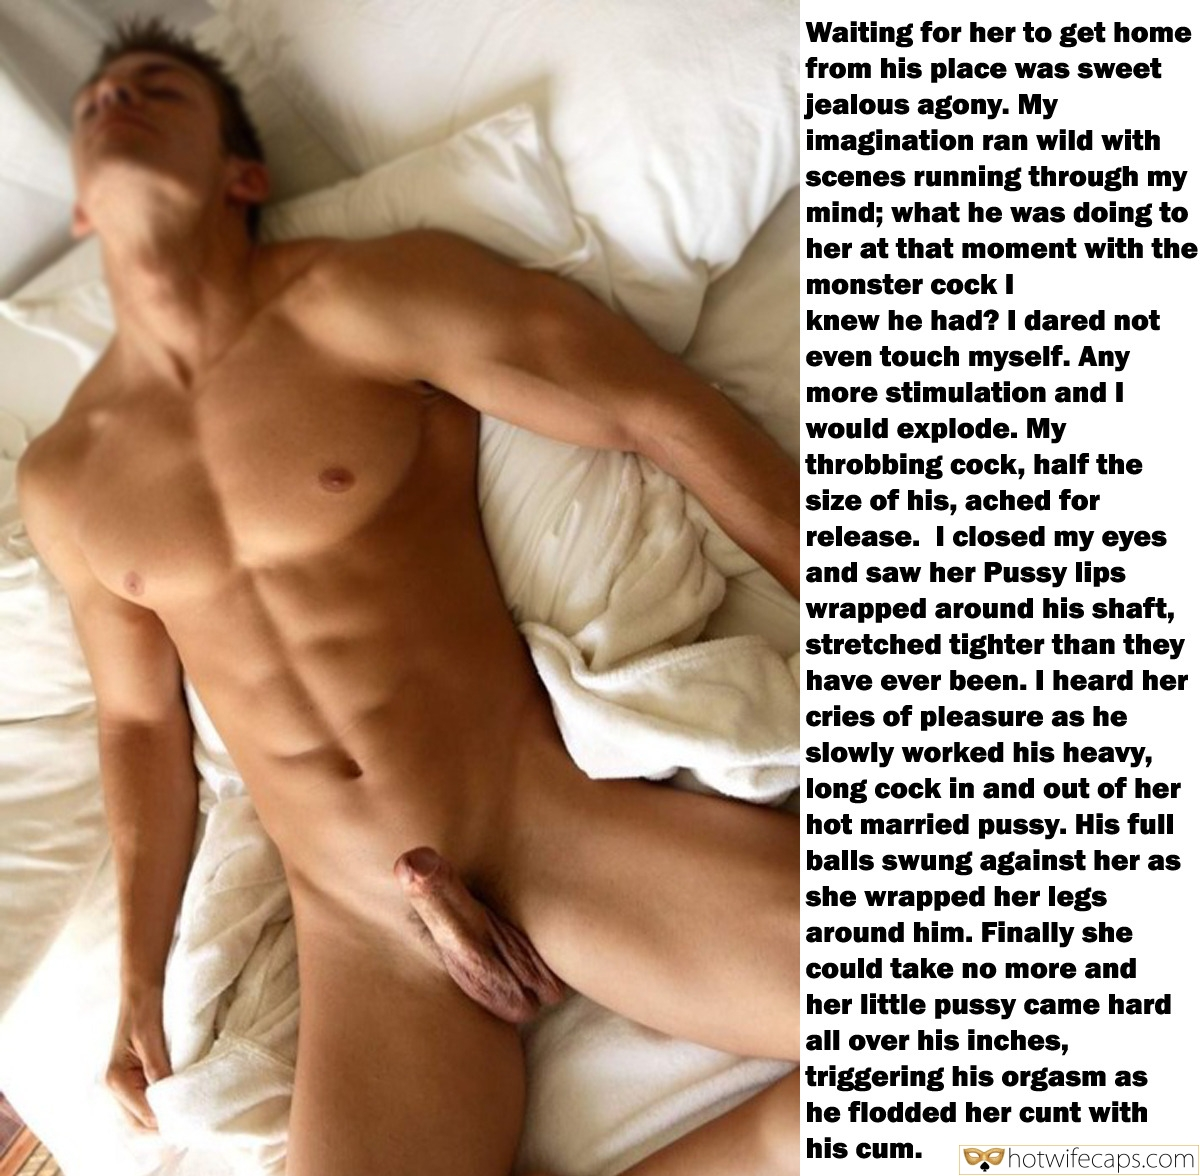 Horny Stallion With Hard Dick Poses Nude in Bed